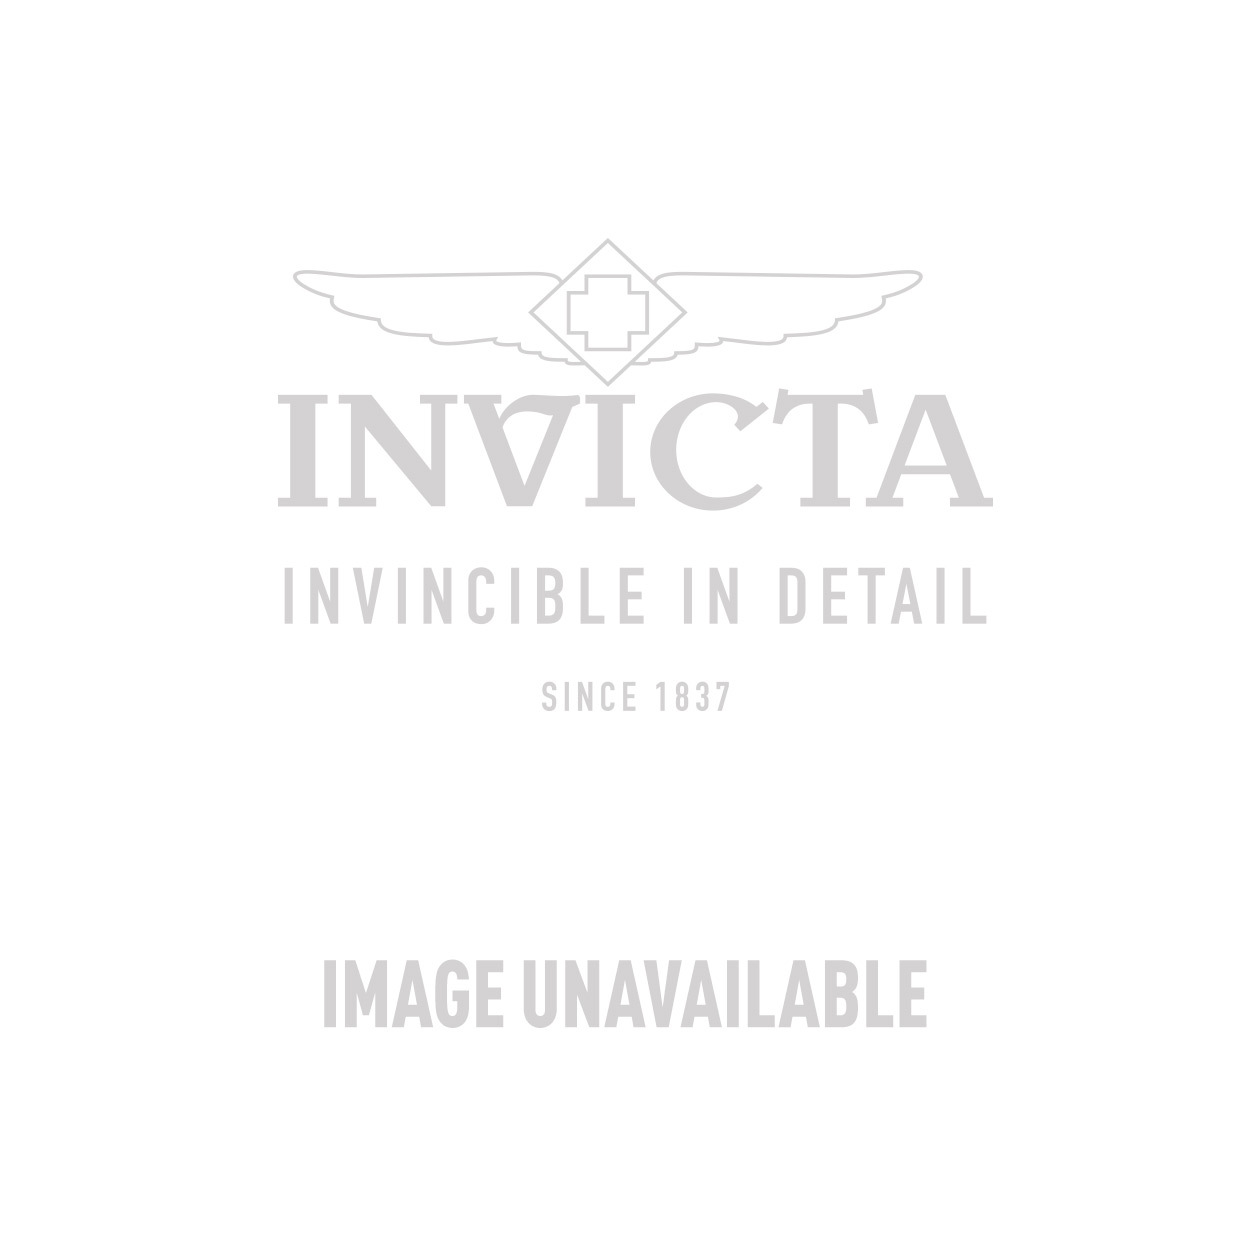 Invicta Subaqua Swiss Made Quartz Watch - Gunmetal, Stainless Steel case Stainless Steel band - Model 15996